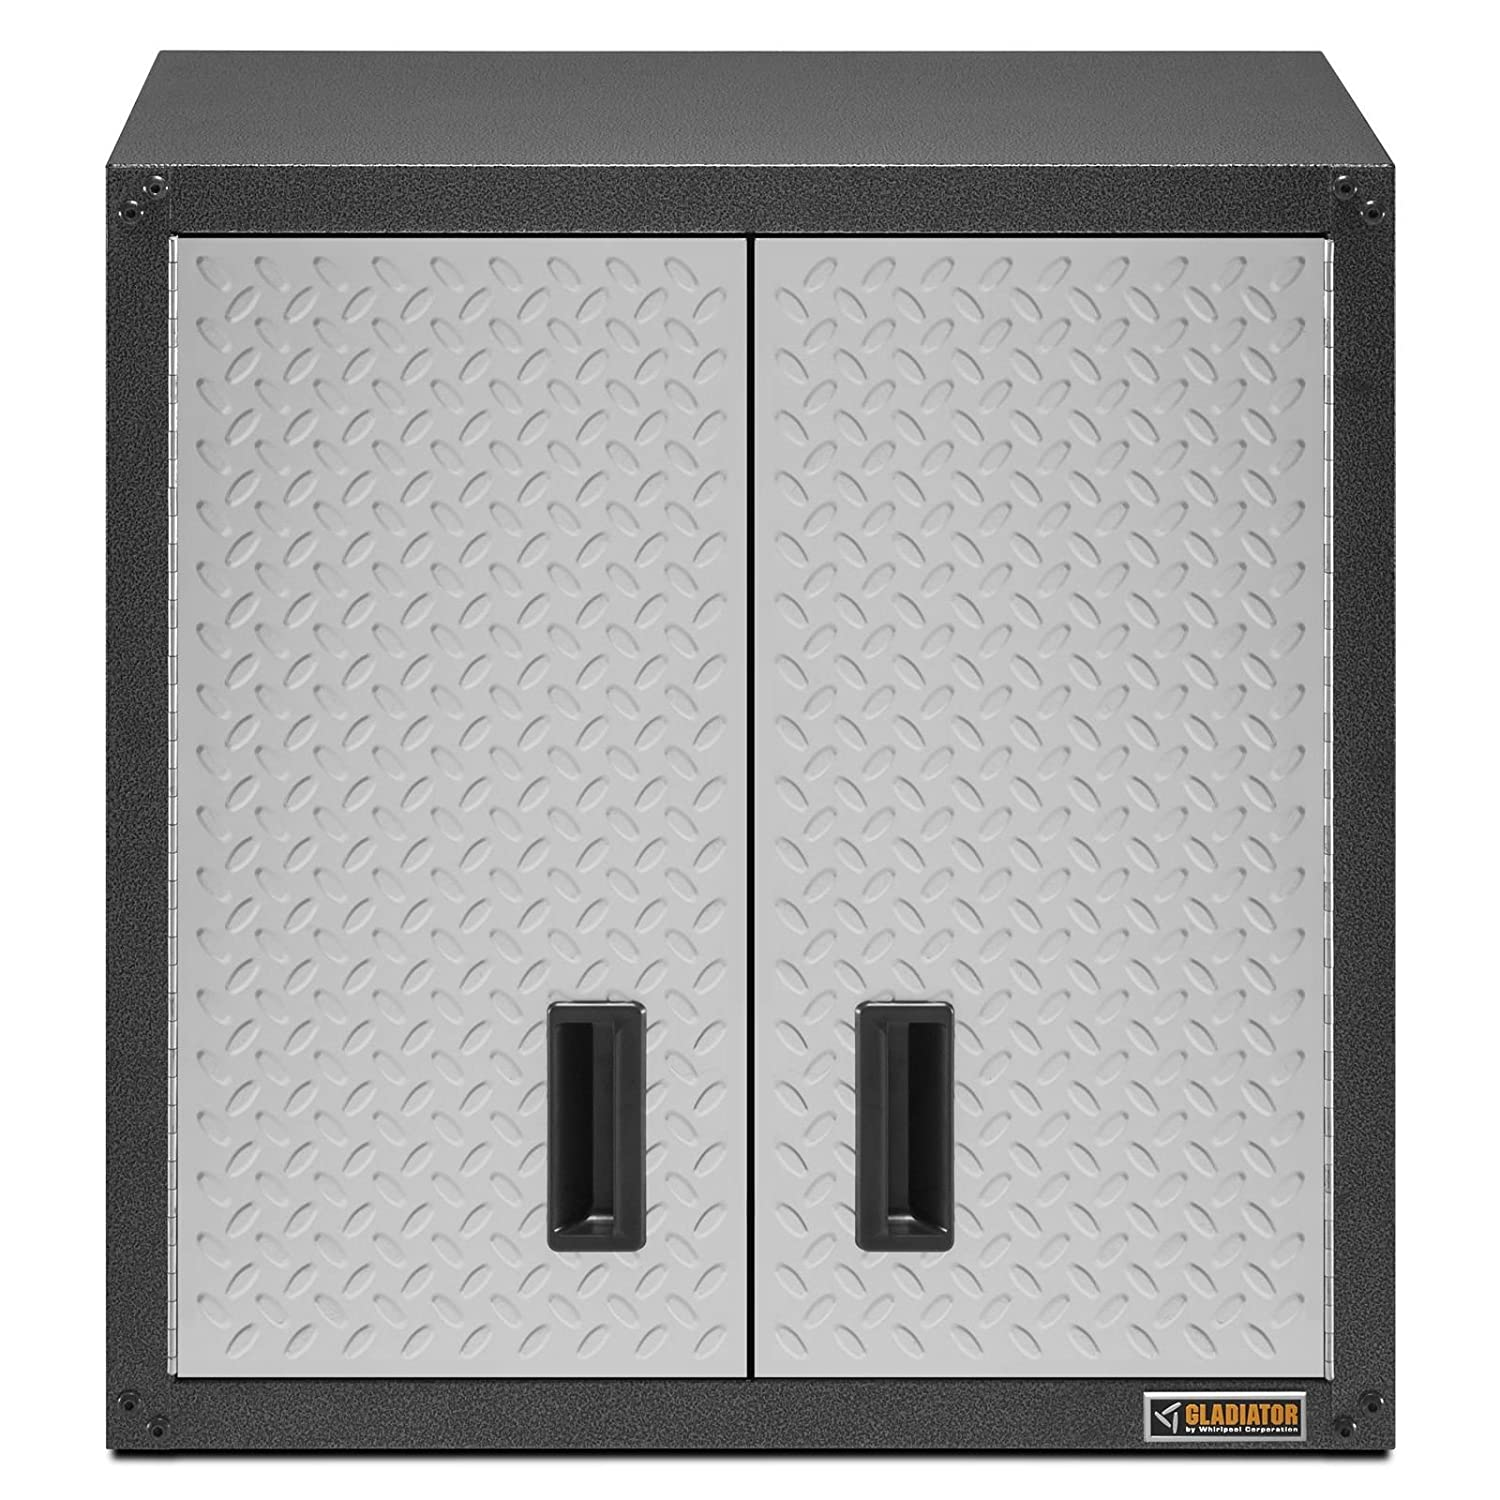 Gladiator Full Door Wall Box U2013 Best Garage Cabinet For The Budget